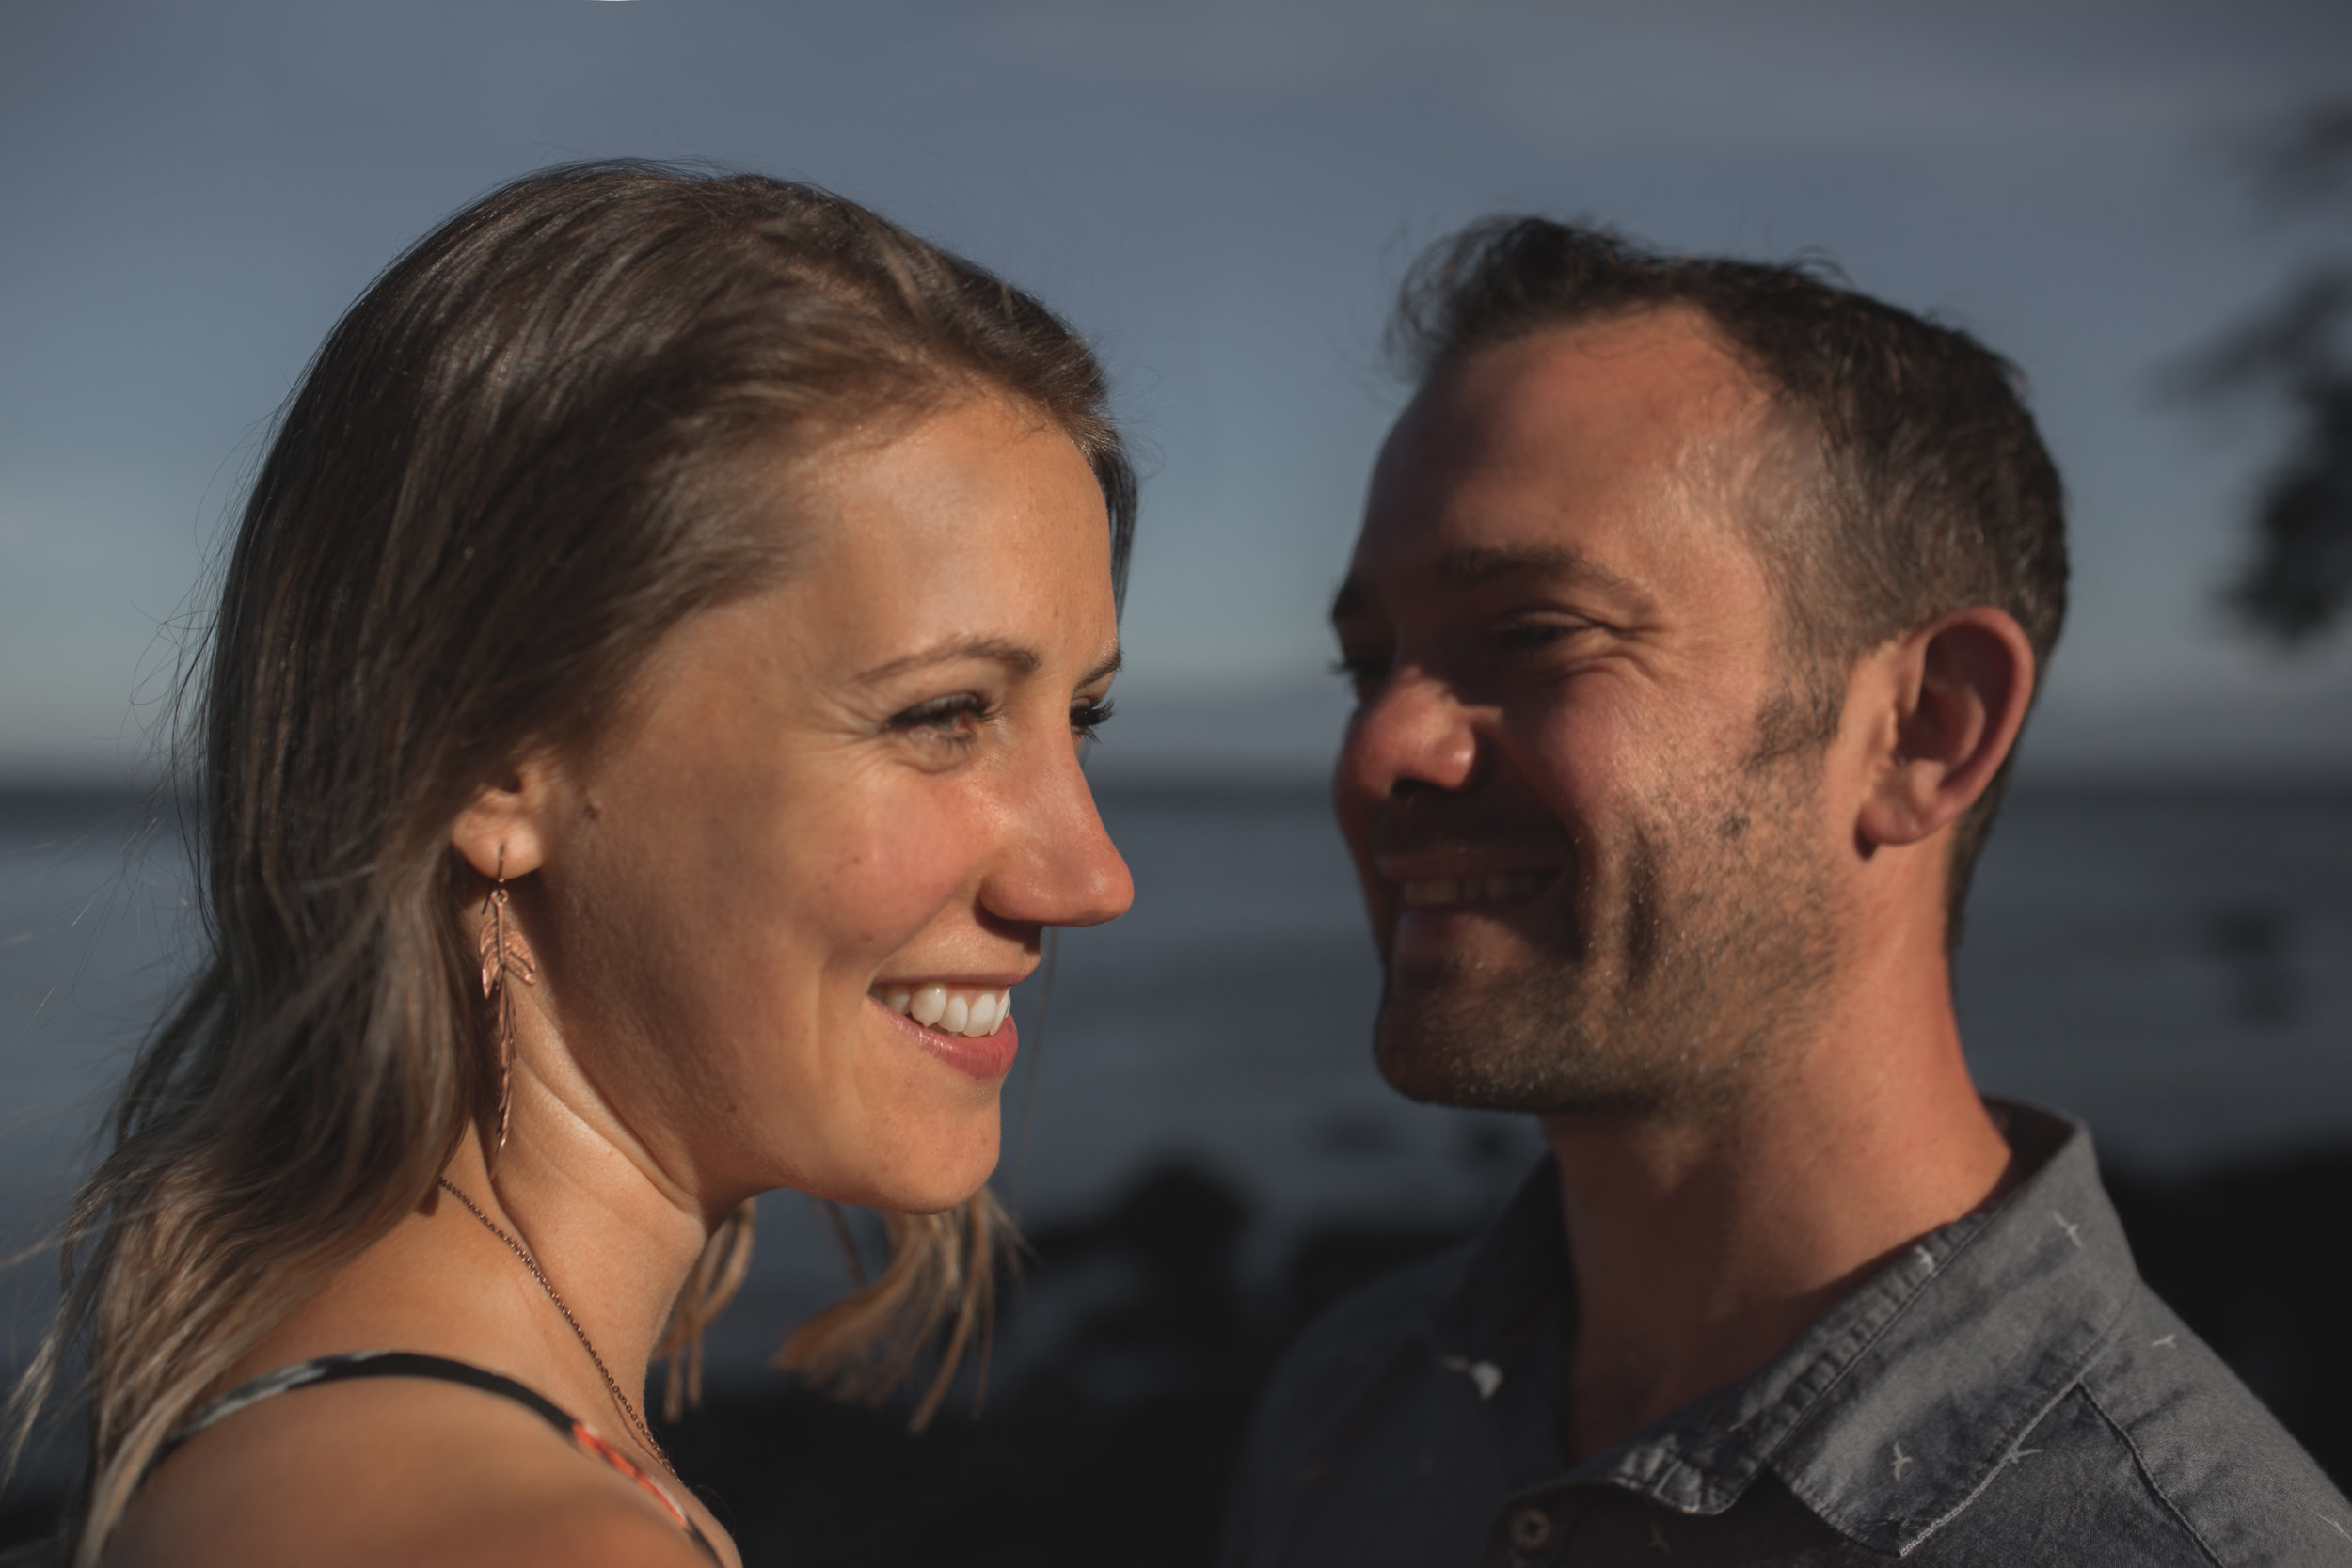 14-Adam-Ziorio-Photography-Engagement-Hangoutsession-East-Sooke-Park-Victoria-BC-Telsa&Willy.jpg